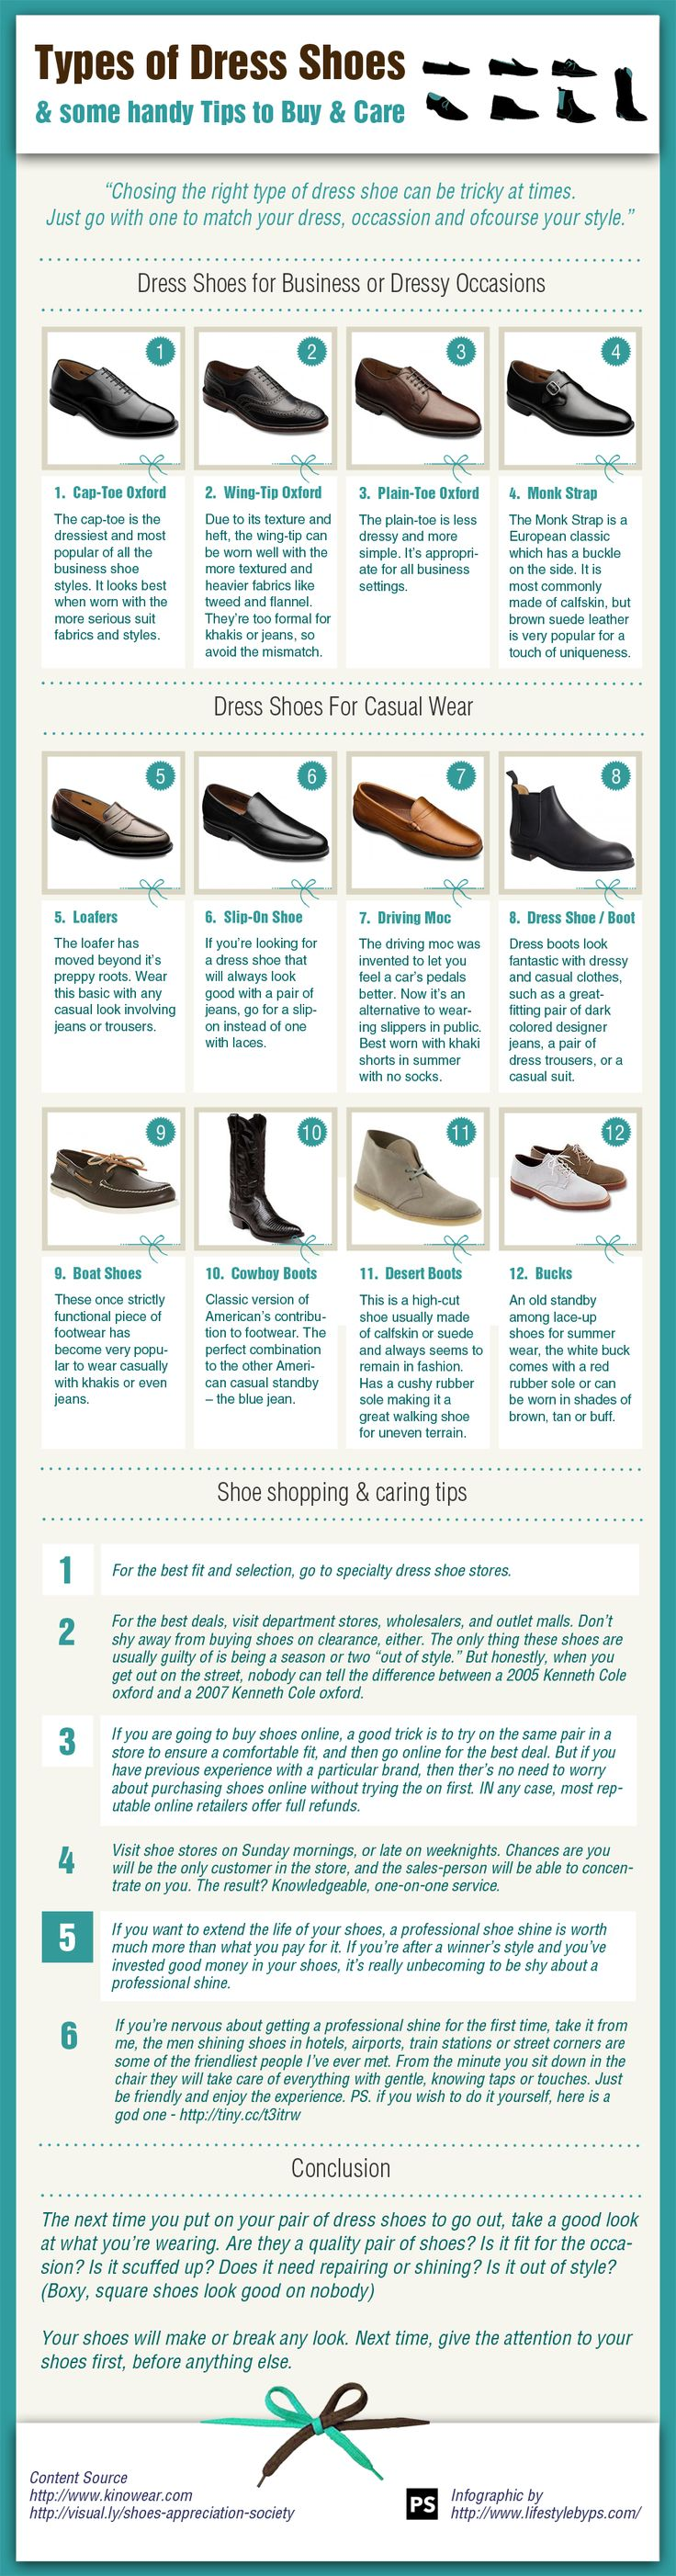 men's shoes infographic  #Style #Fashion #Menswear Re-pinned by www.avacationrental4me.com